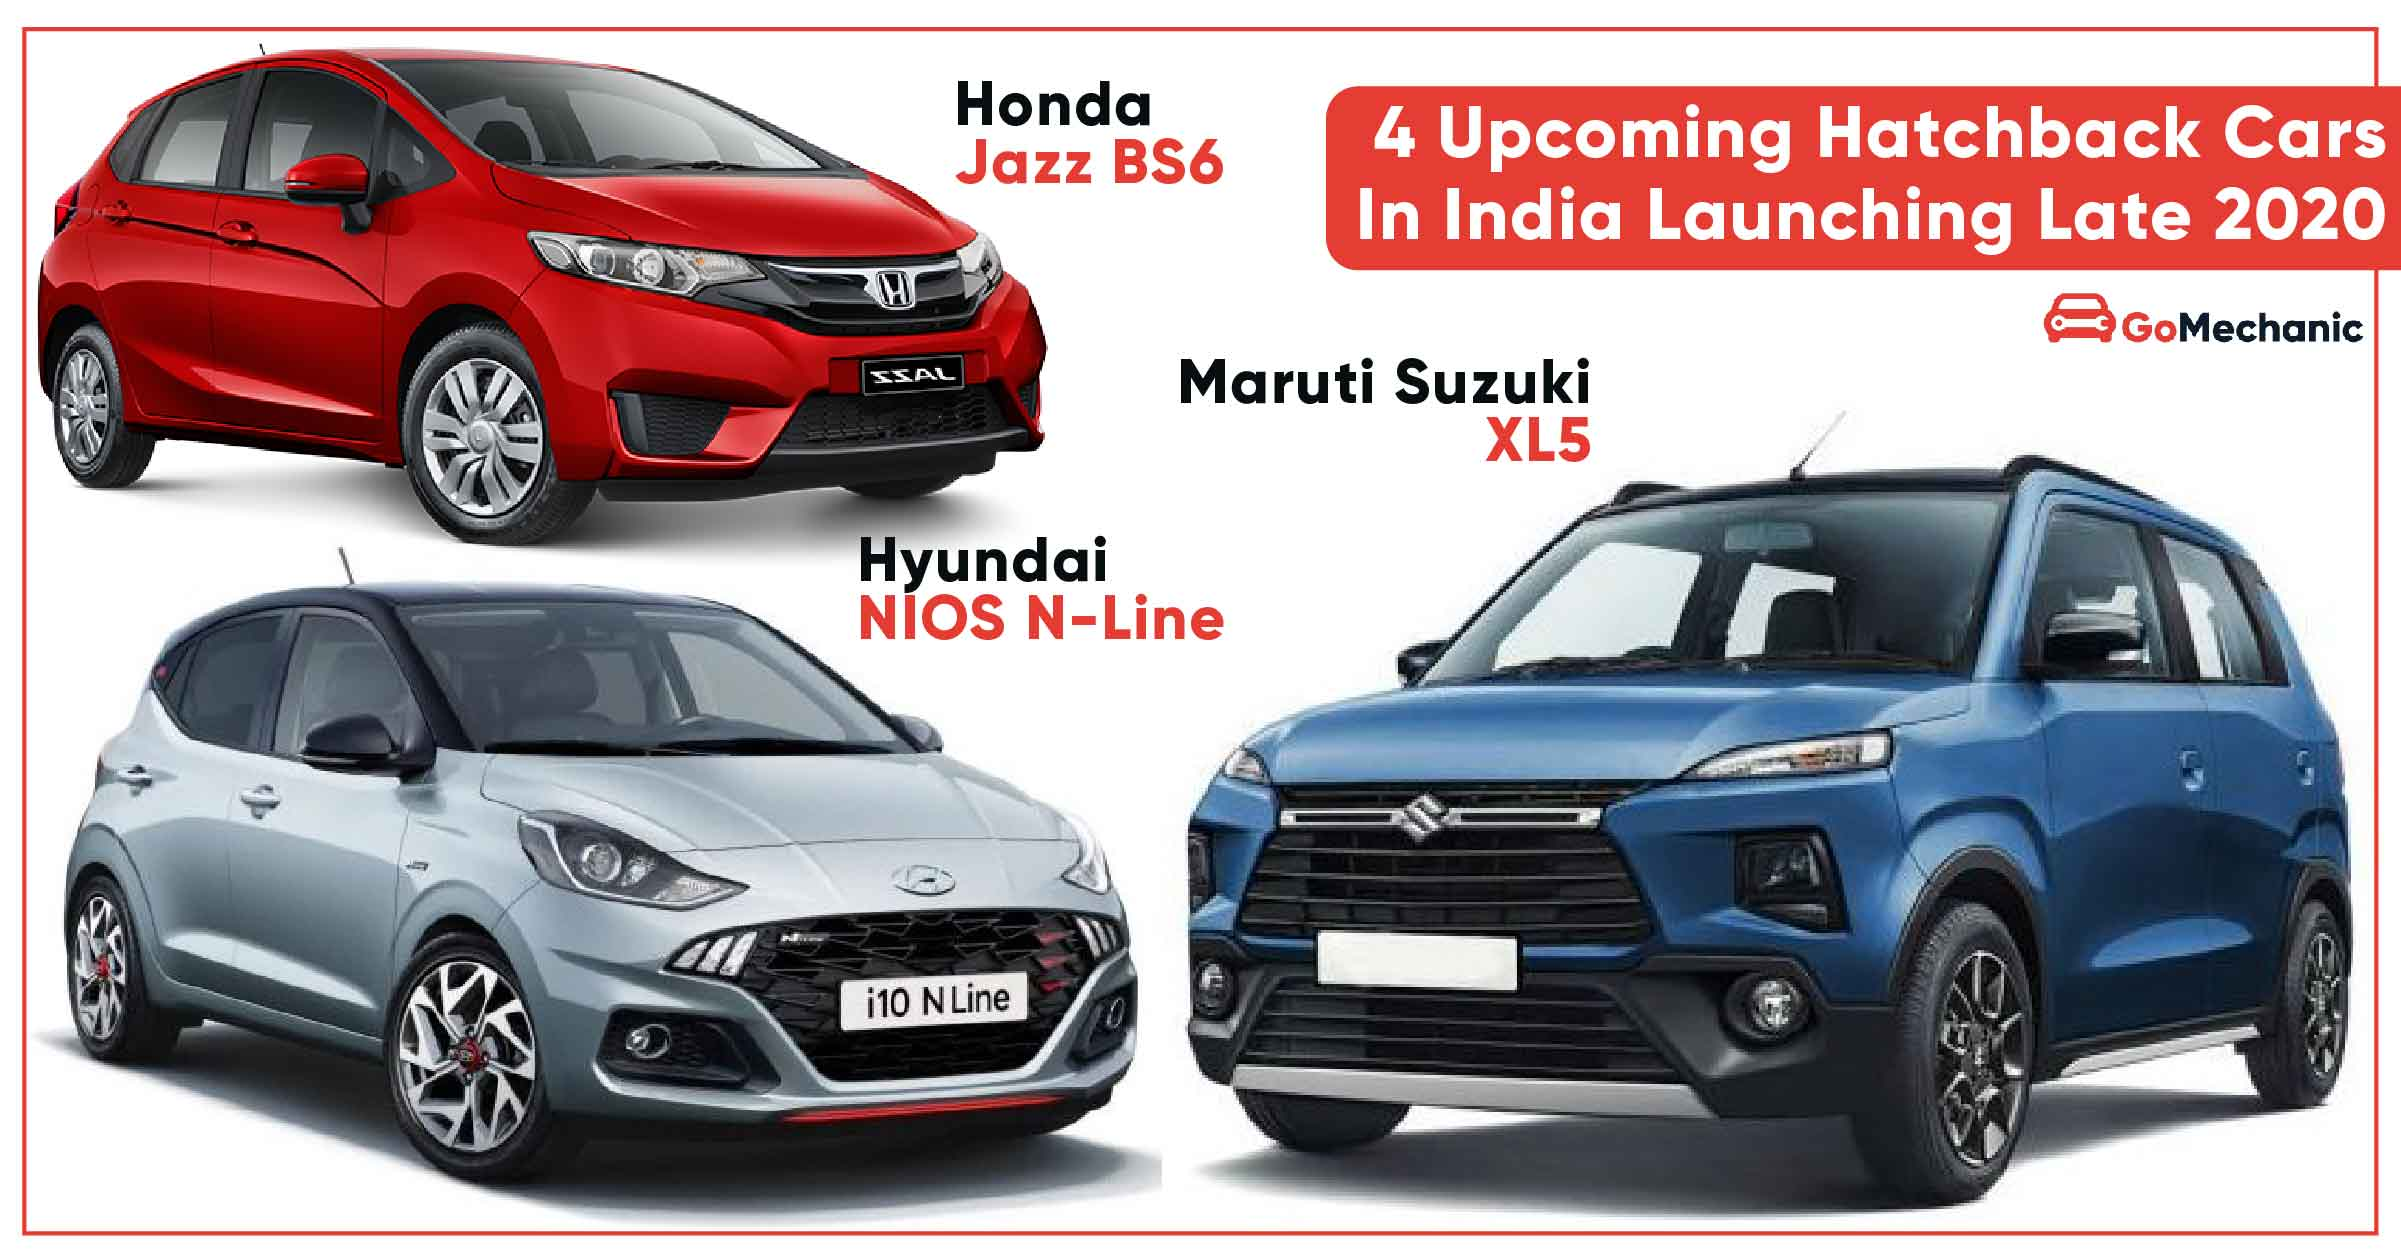 4 Upcoming Hatchback Cars In India Launching Late 2020